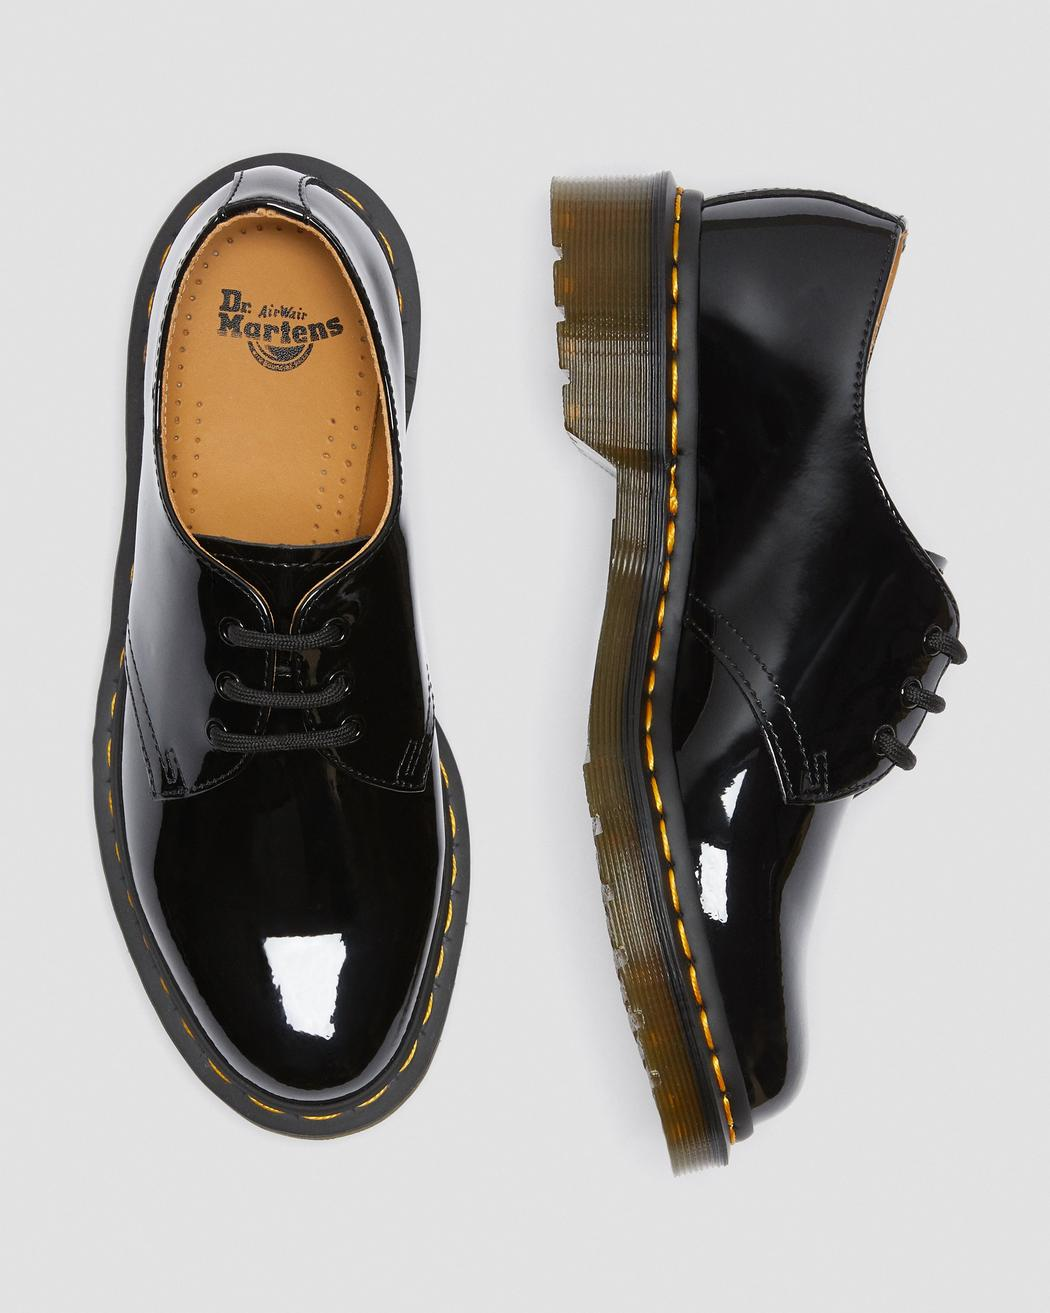 DR MARTENS W'S FOOTWEAR 1461 PATENT LEATHER OXFORD SHOE